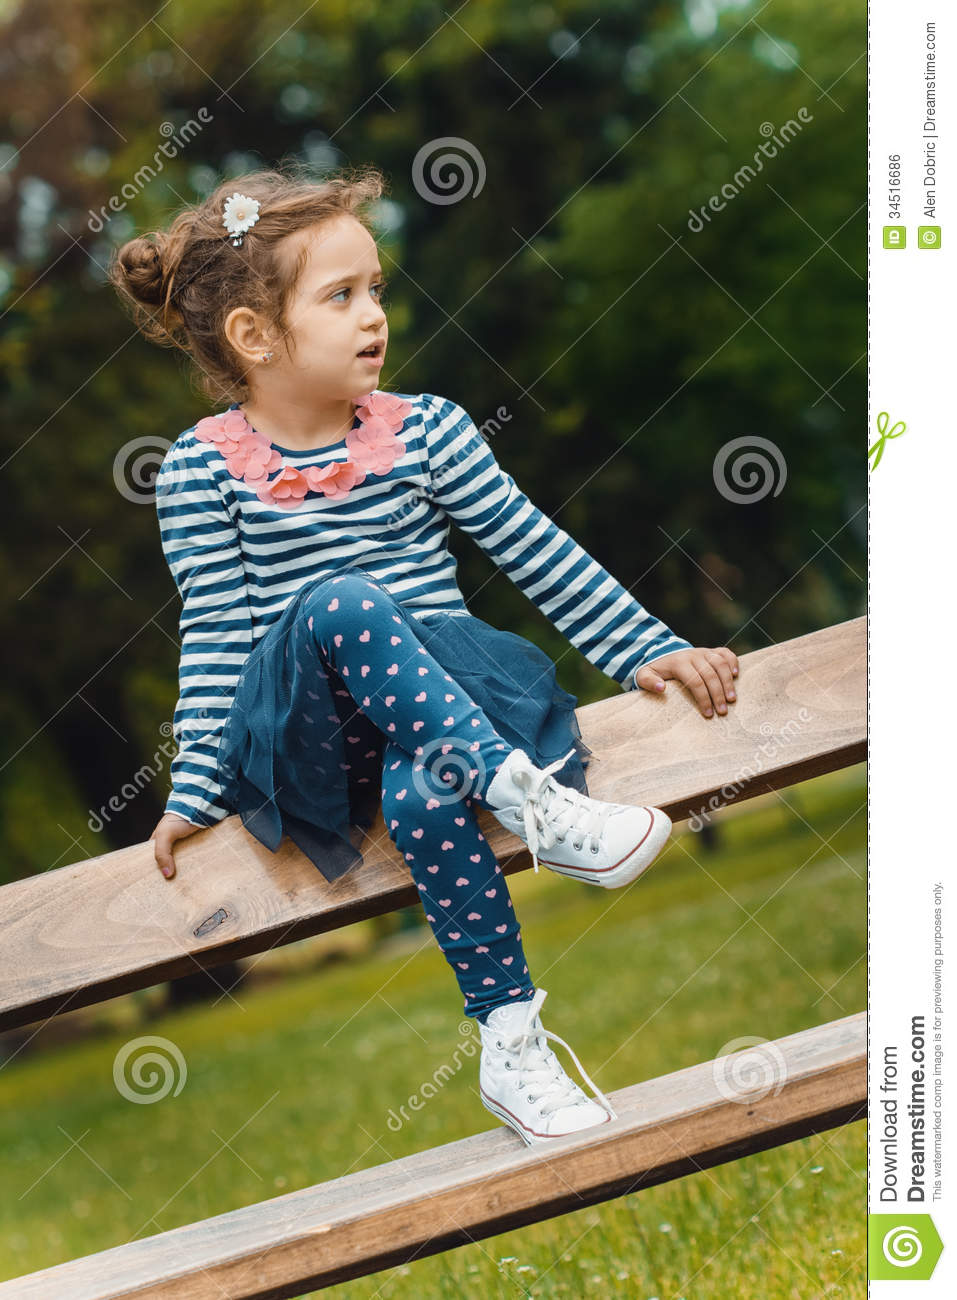 Profile Of Cute Little Girl In A Park Royalty Free Stock